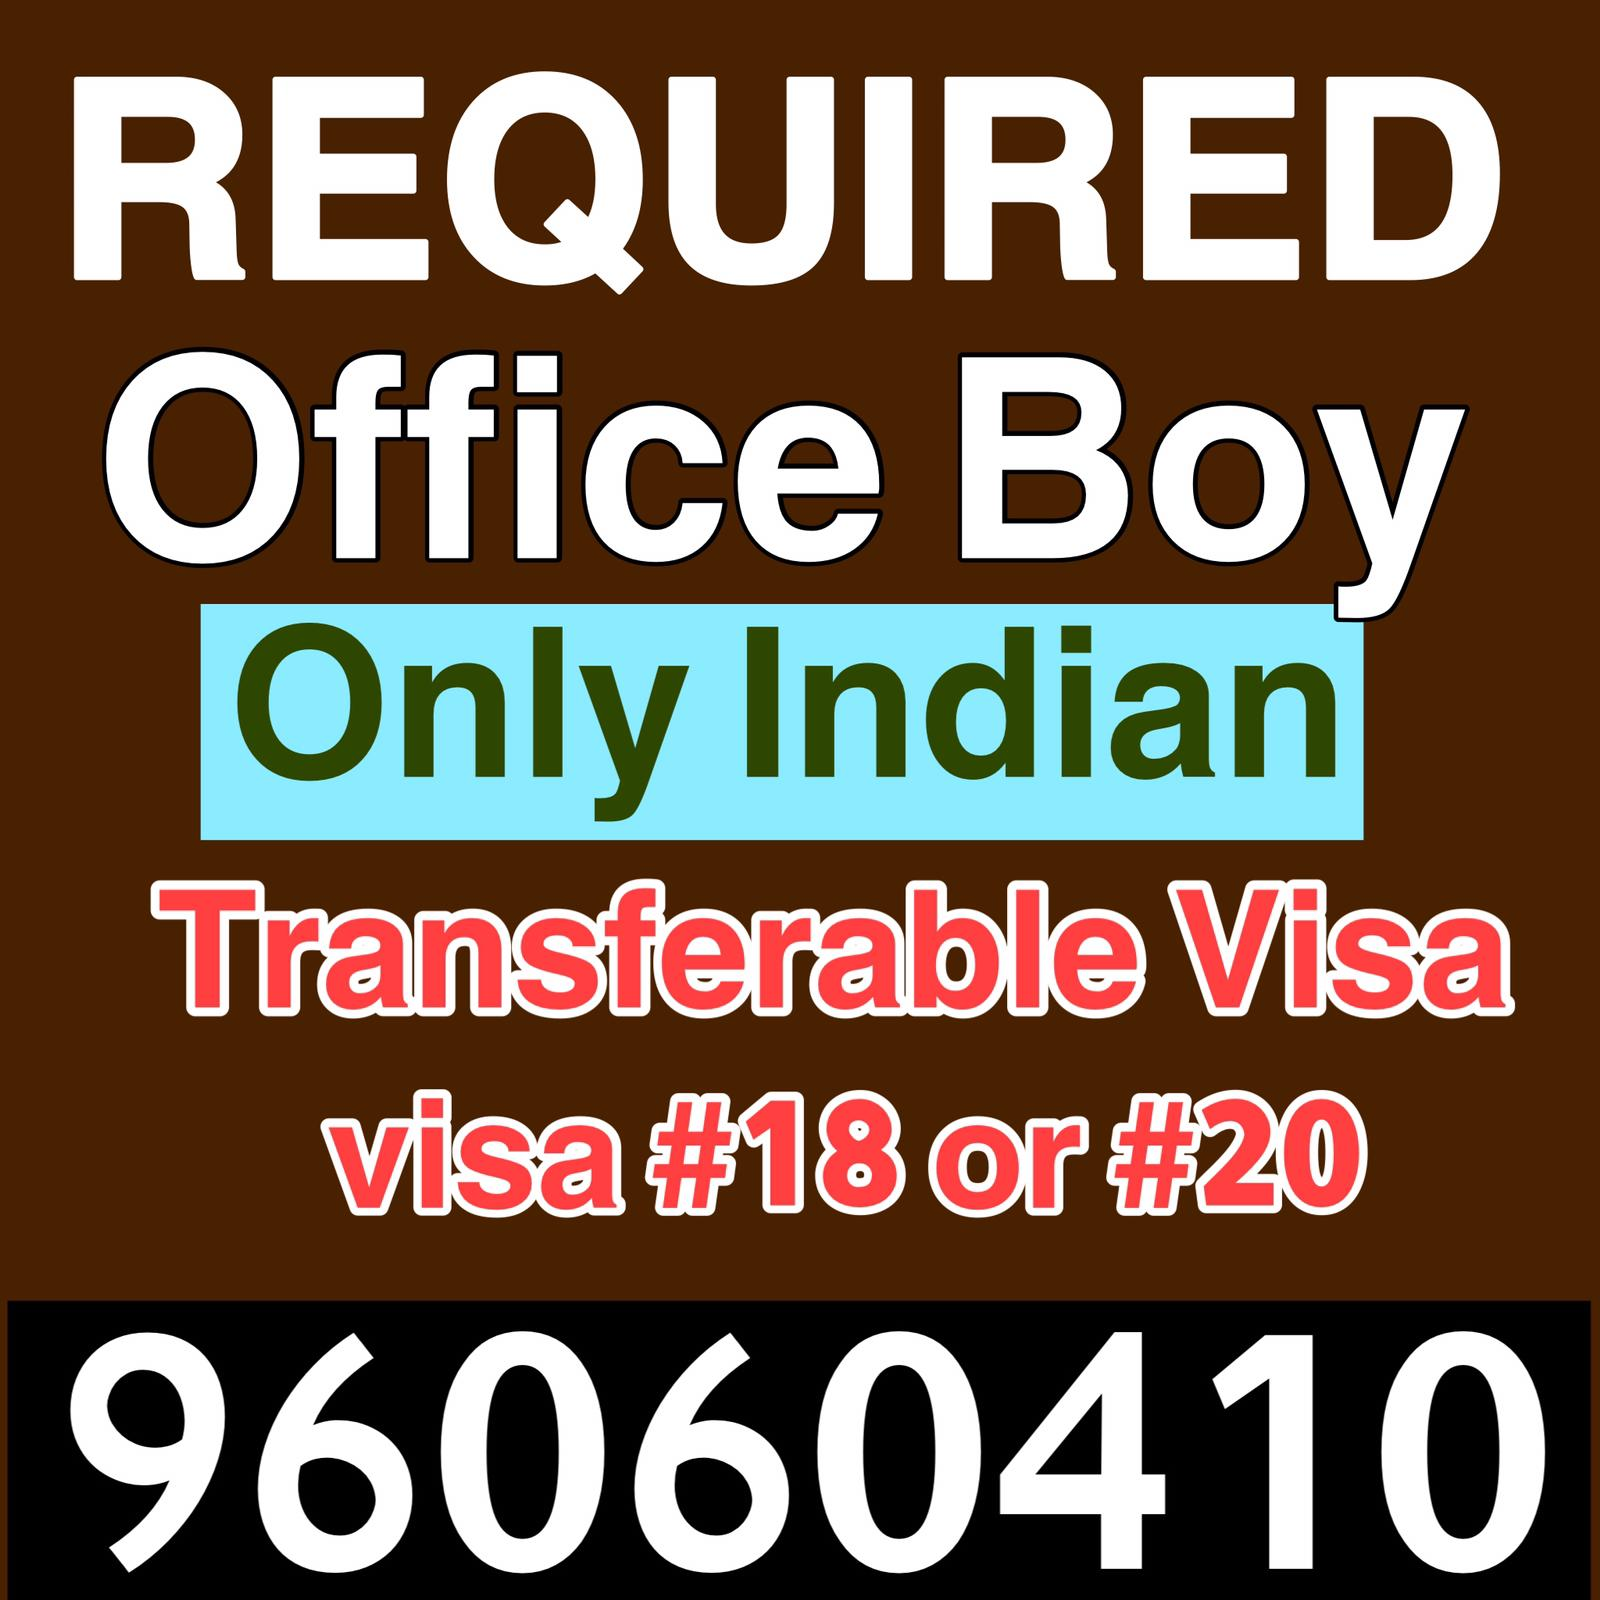 Required indian office boy